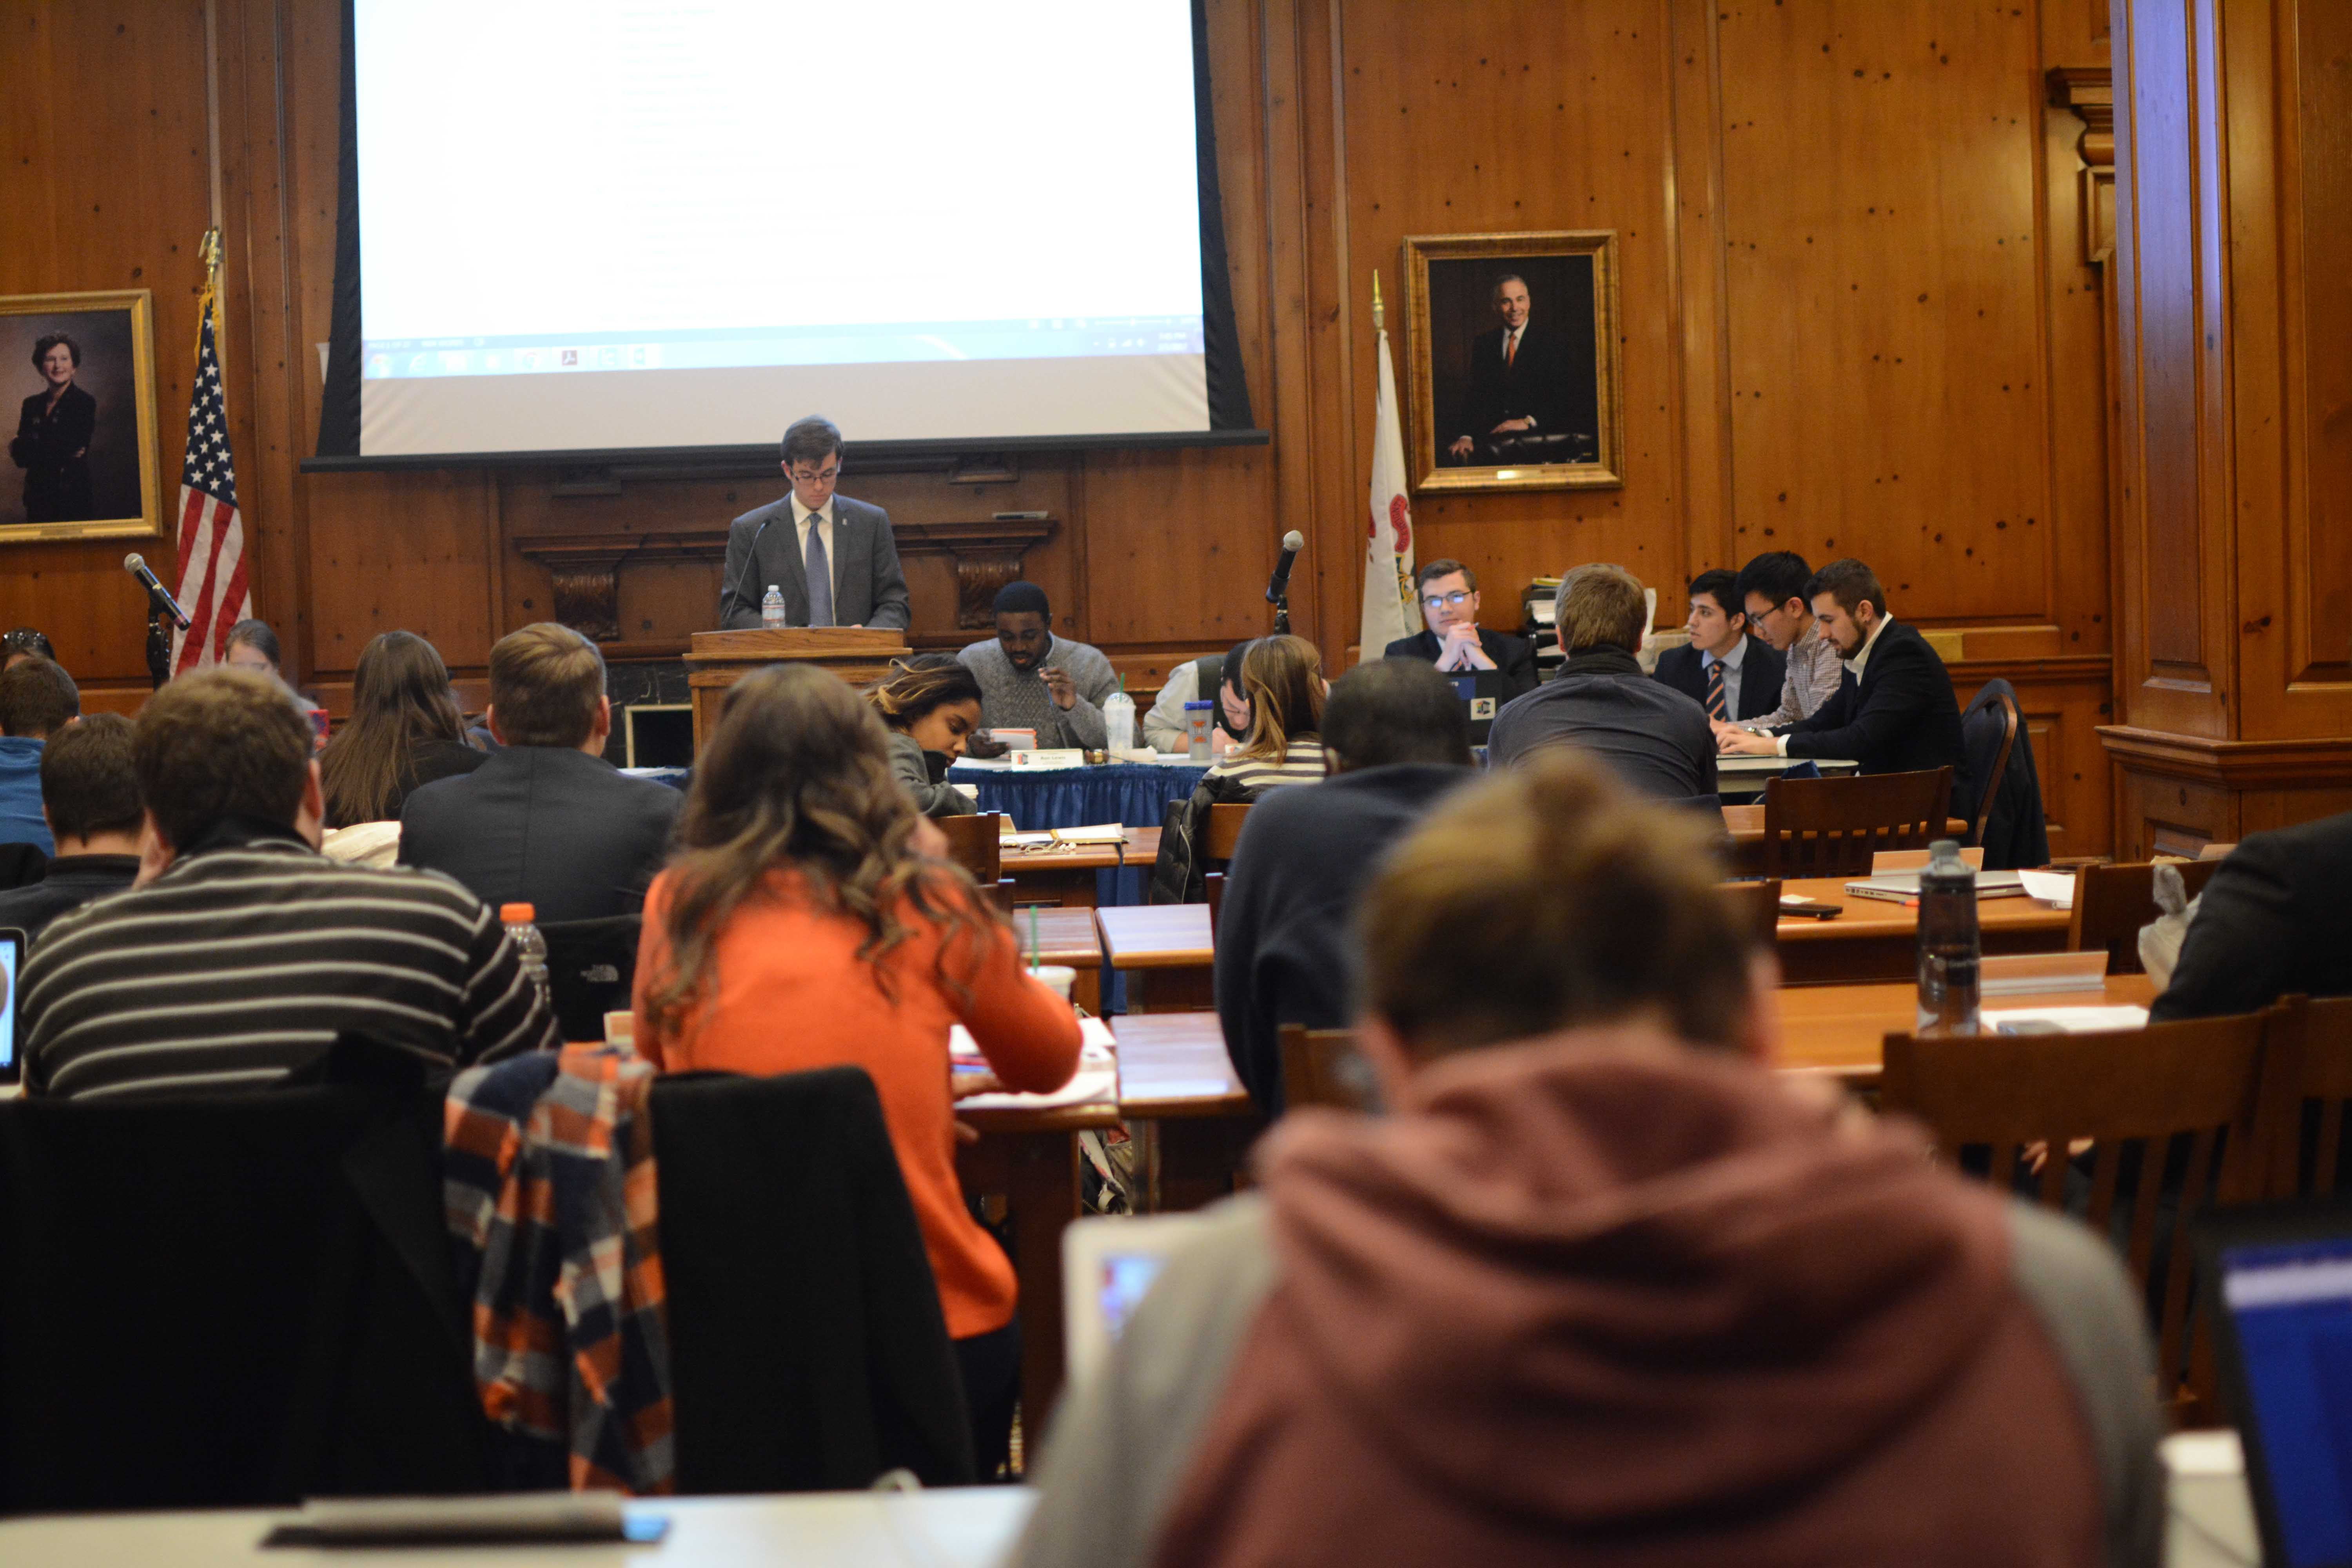 The Illinois Student Government met for the last time of the spring semester on Wednesday. Student body president Raneem Shamseldin, junior in Business, encouraged members to work on resolutions over the summer.